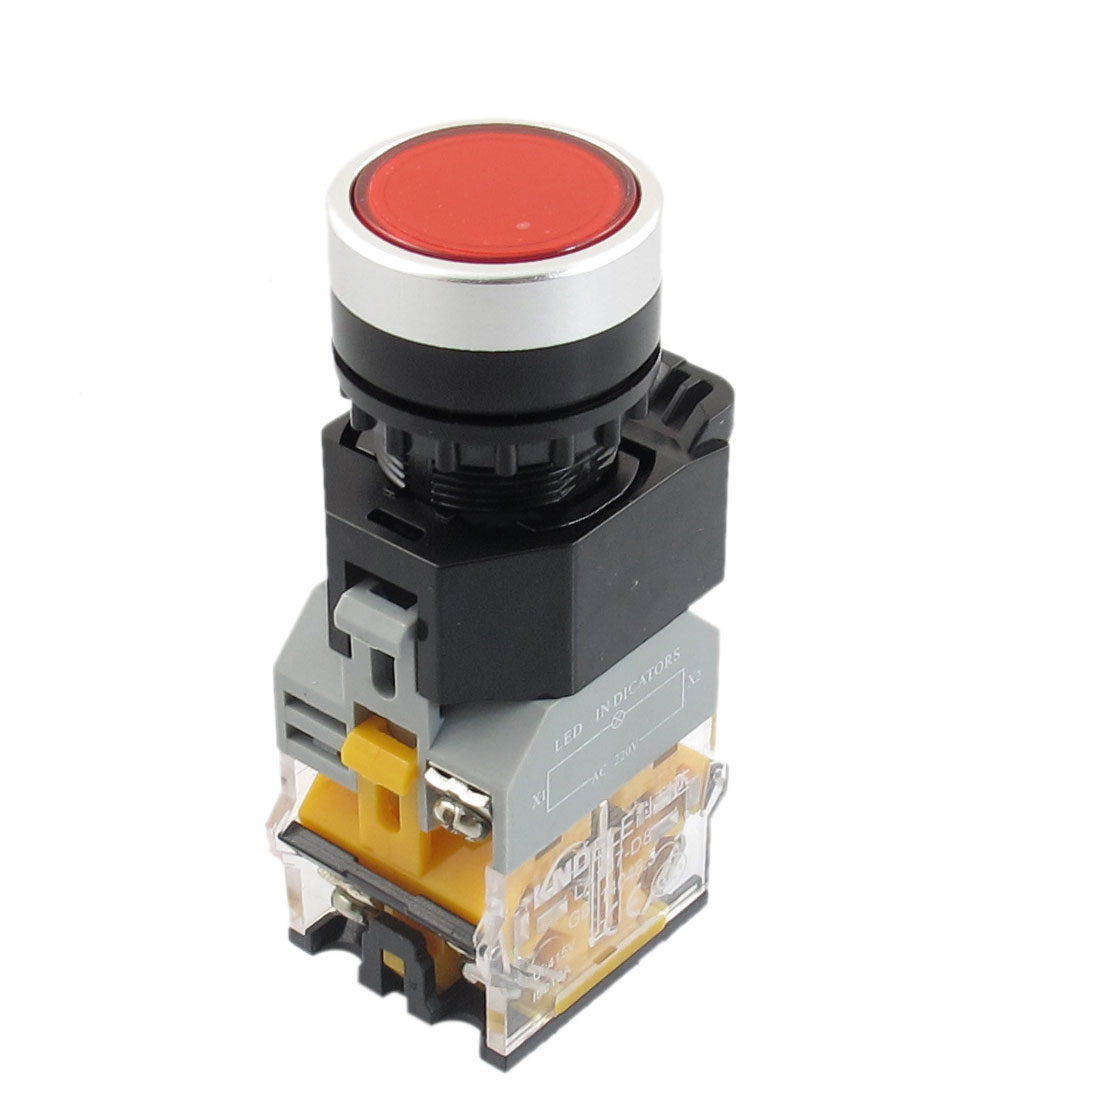 AC 220V Red LED Light Latching Push Button Switch 22mm 1 NO 1 NC